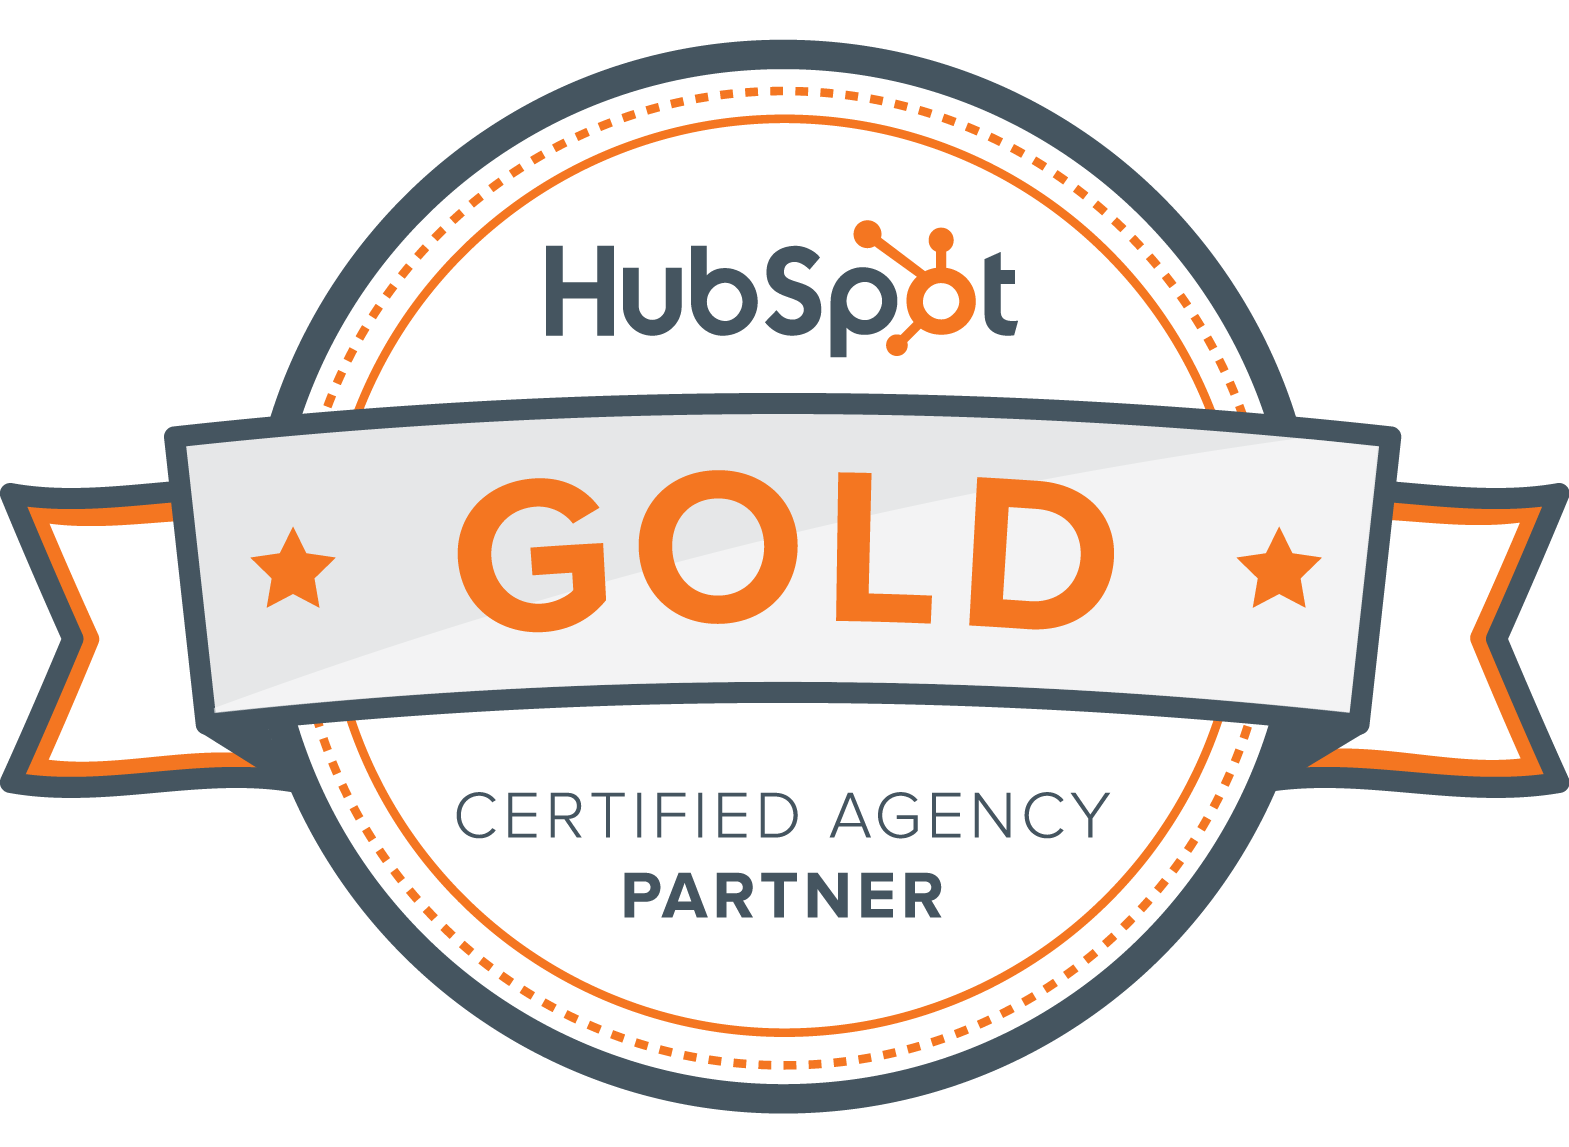 HubSpost Stockholm Sweden Gold Certified Agency Partner - Webbstrategerna